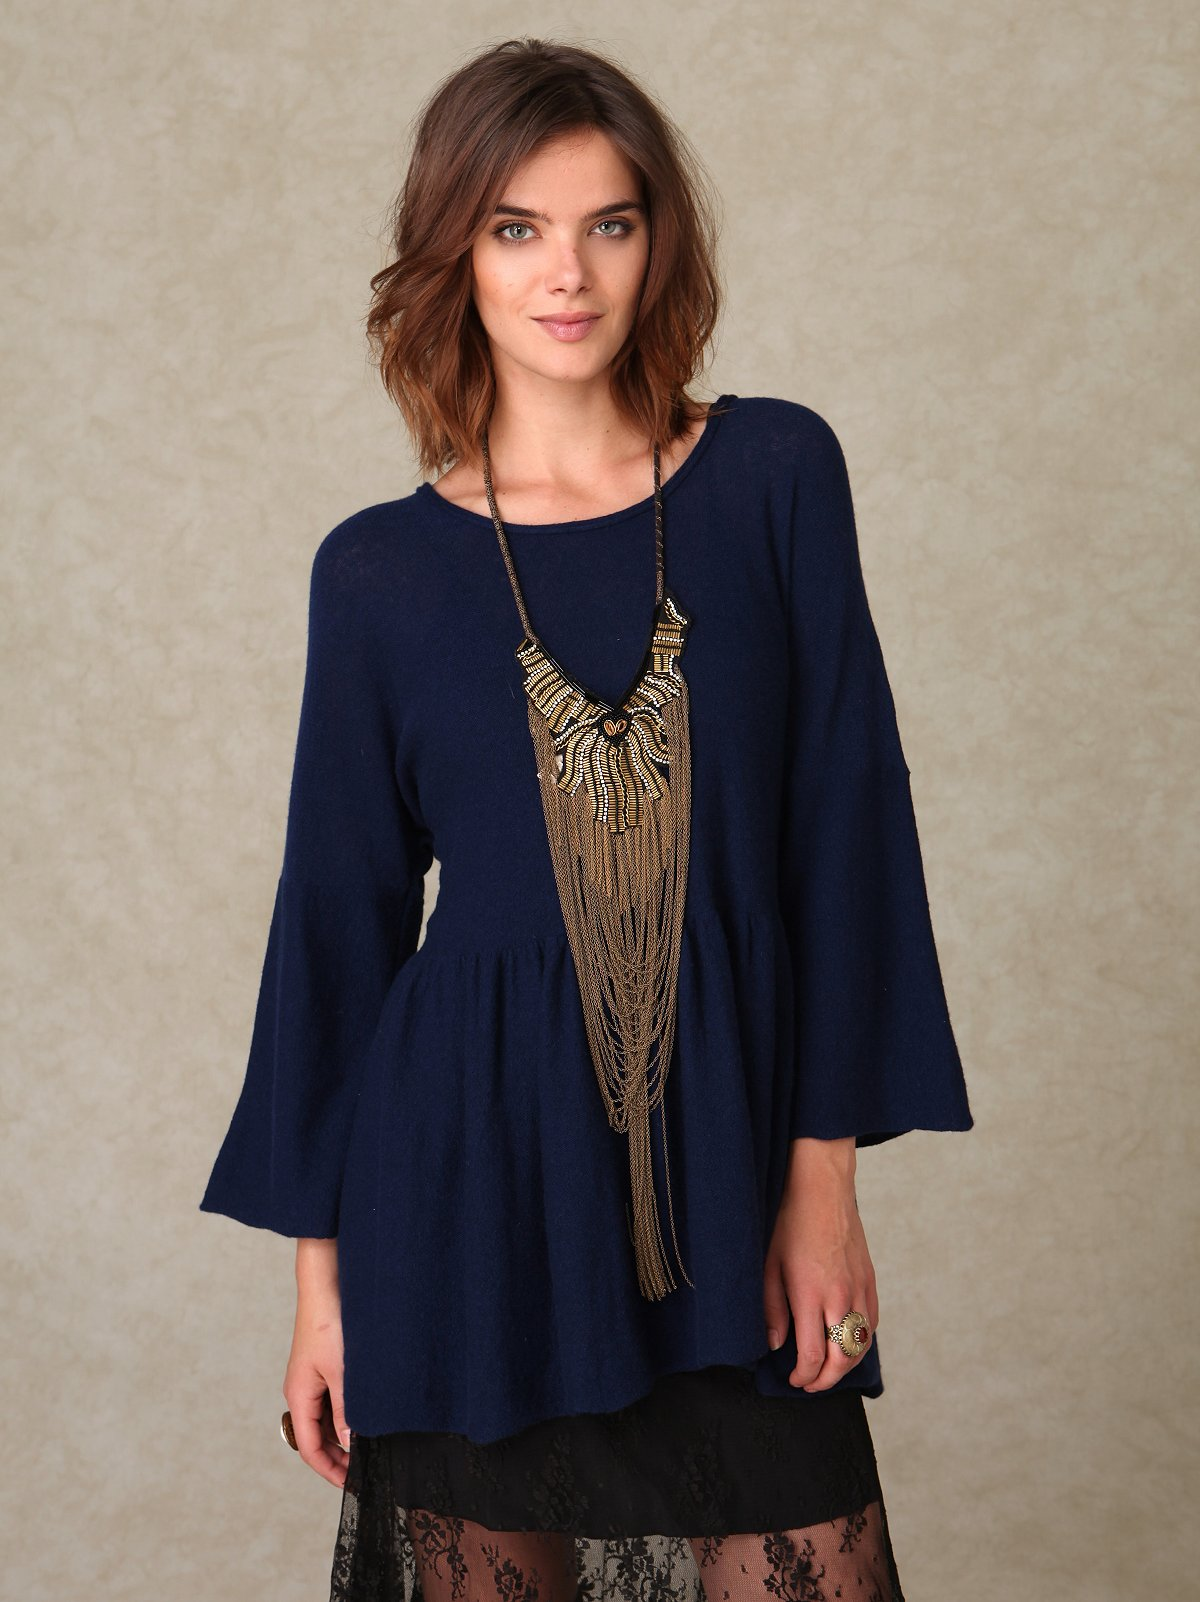 Dolled Up in Cashmere Tunic